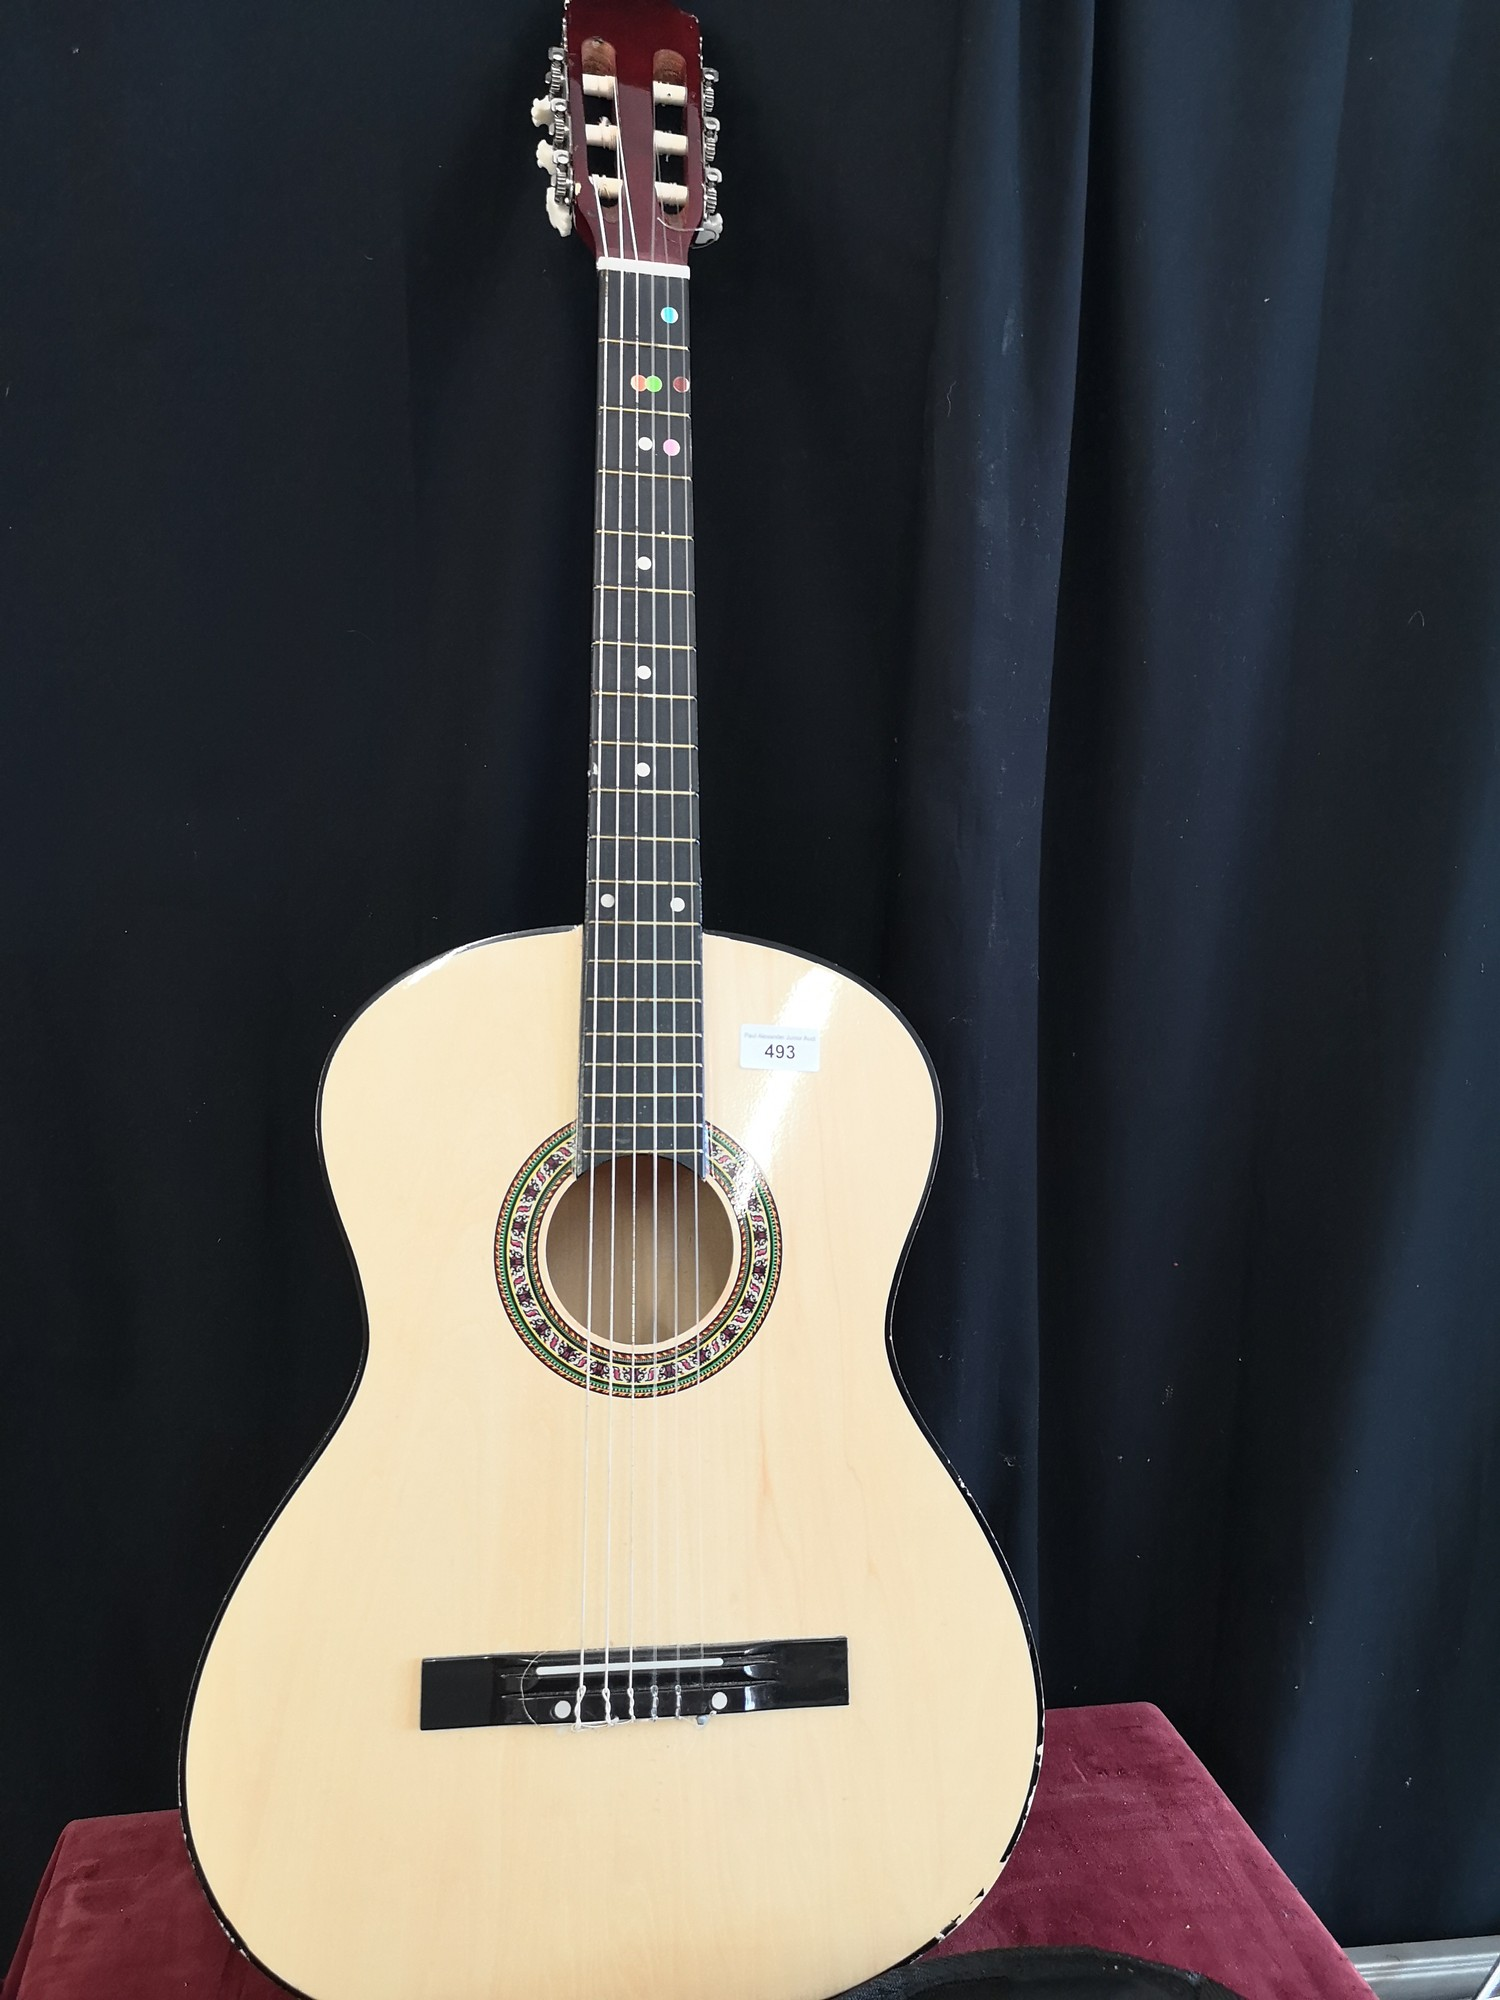 Acoustic guitar with inlaid pattern.